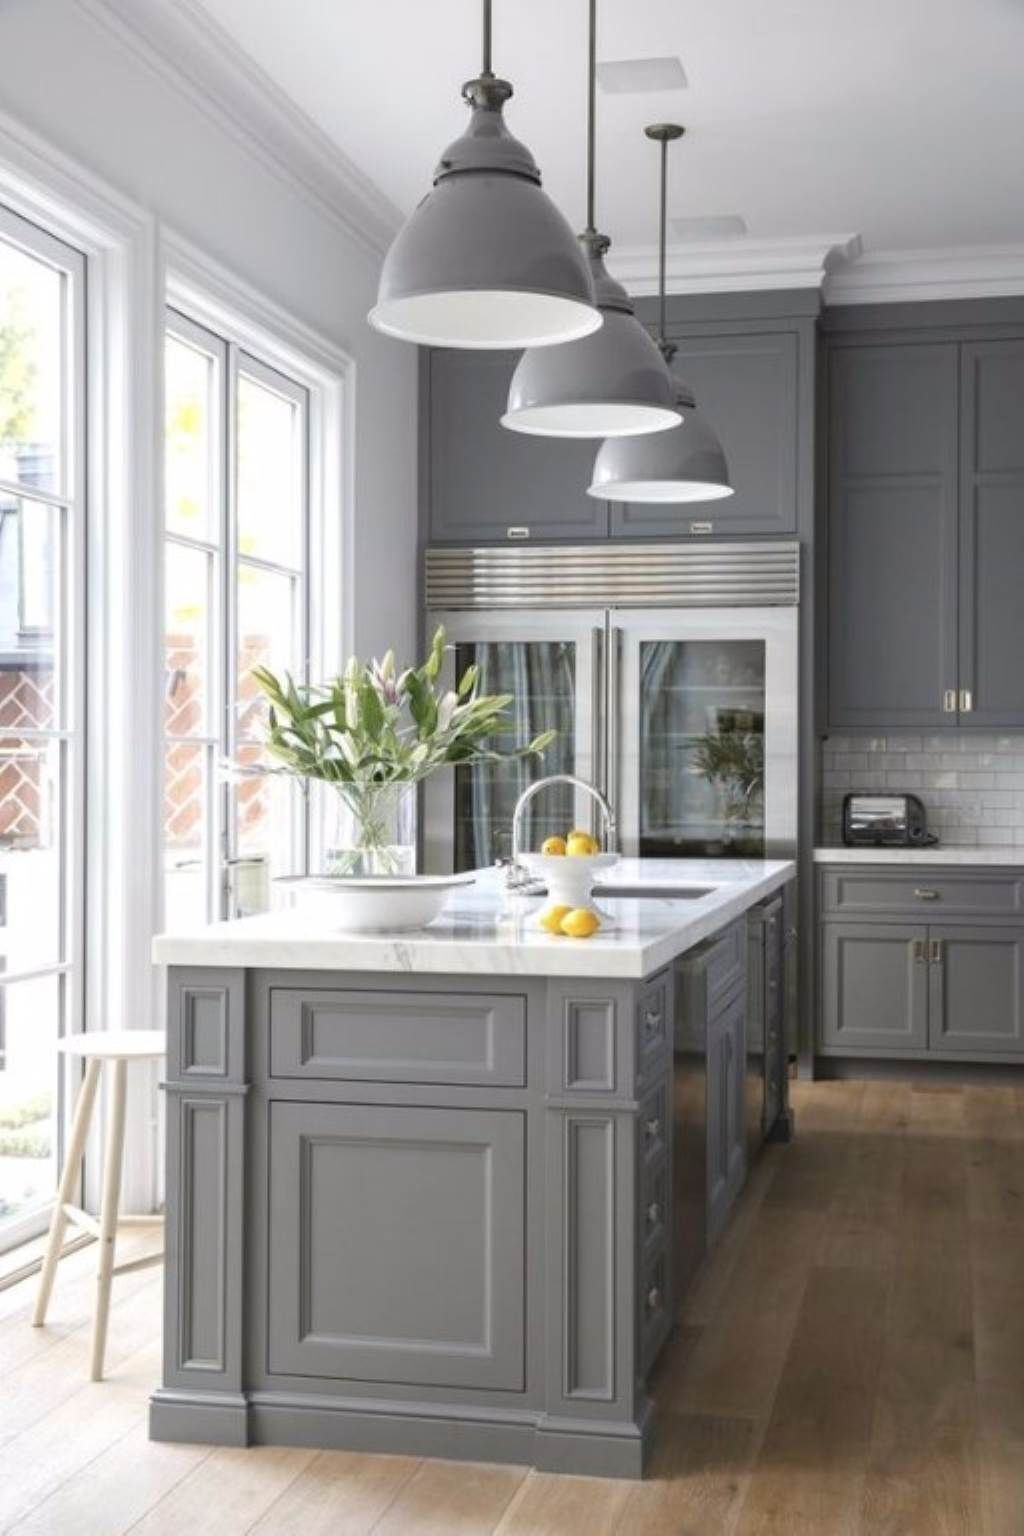 5 Mistakes People Make When Painting Kitchen Cabinets Painted Furniture Ideas Kitchen Design Kitchen Inspirations Charming Kitchen